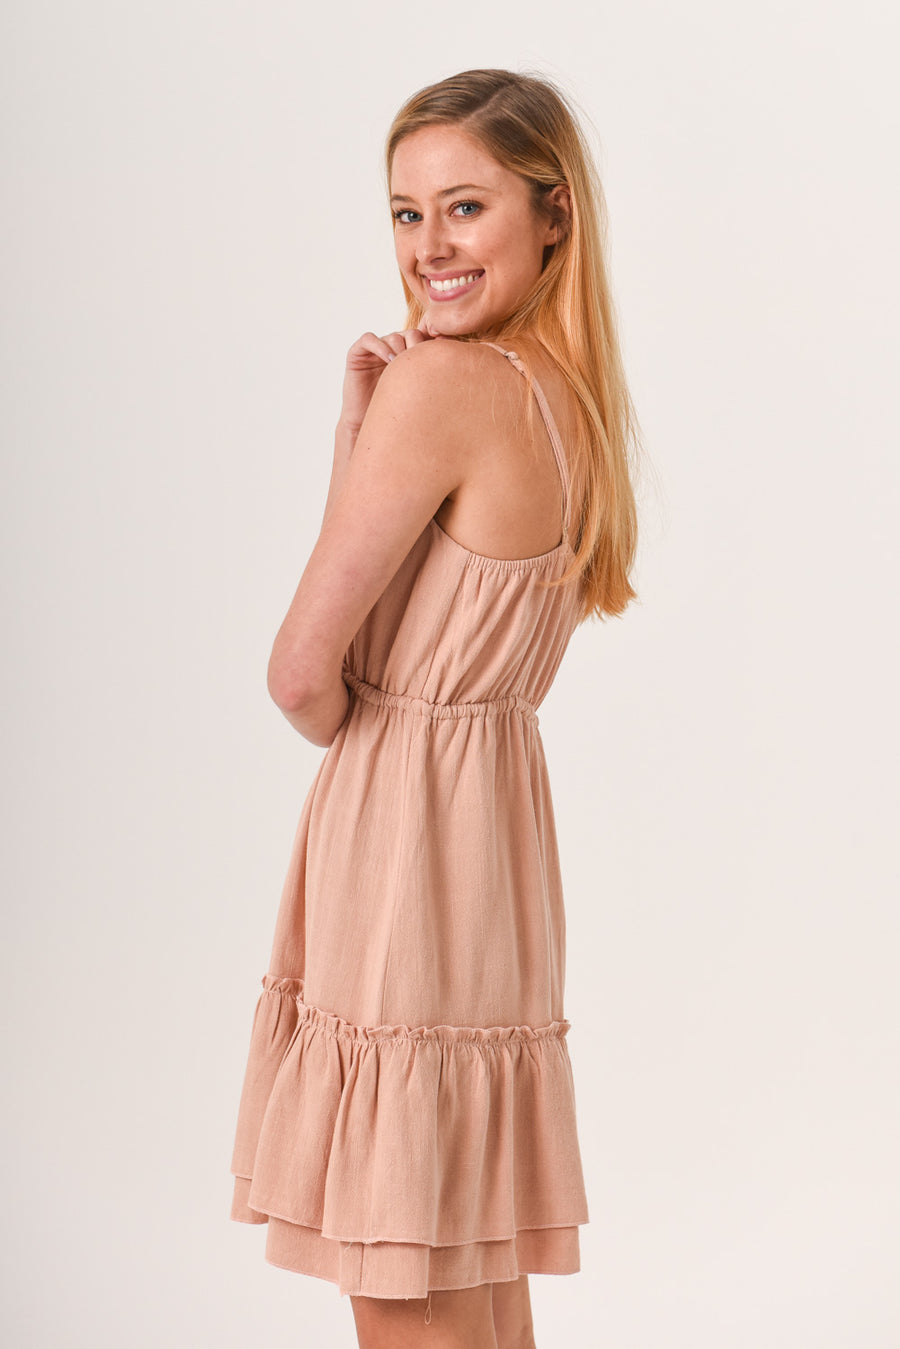 Sally Dress - Blush